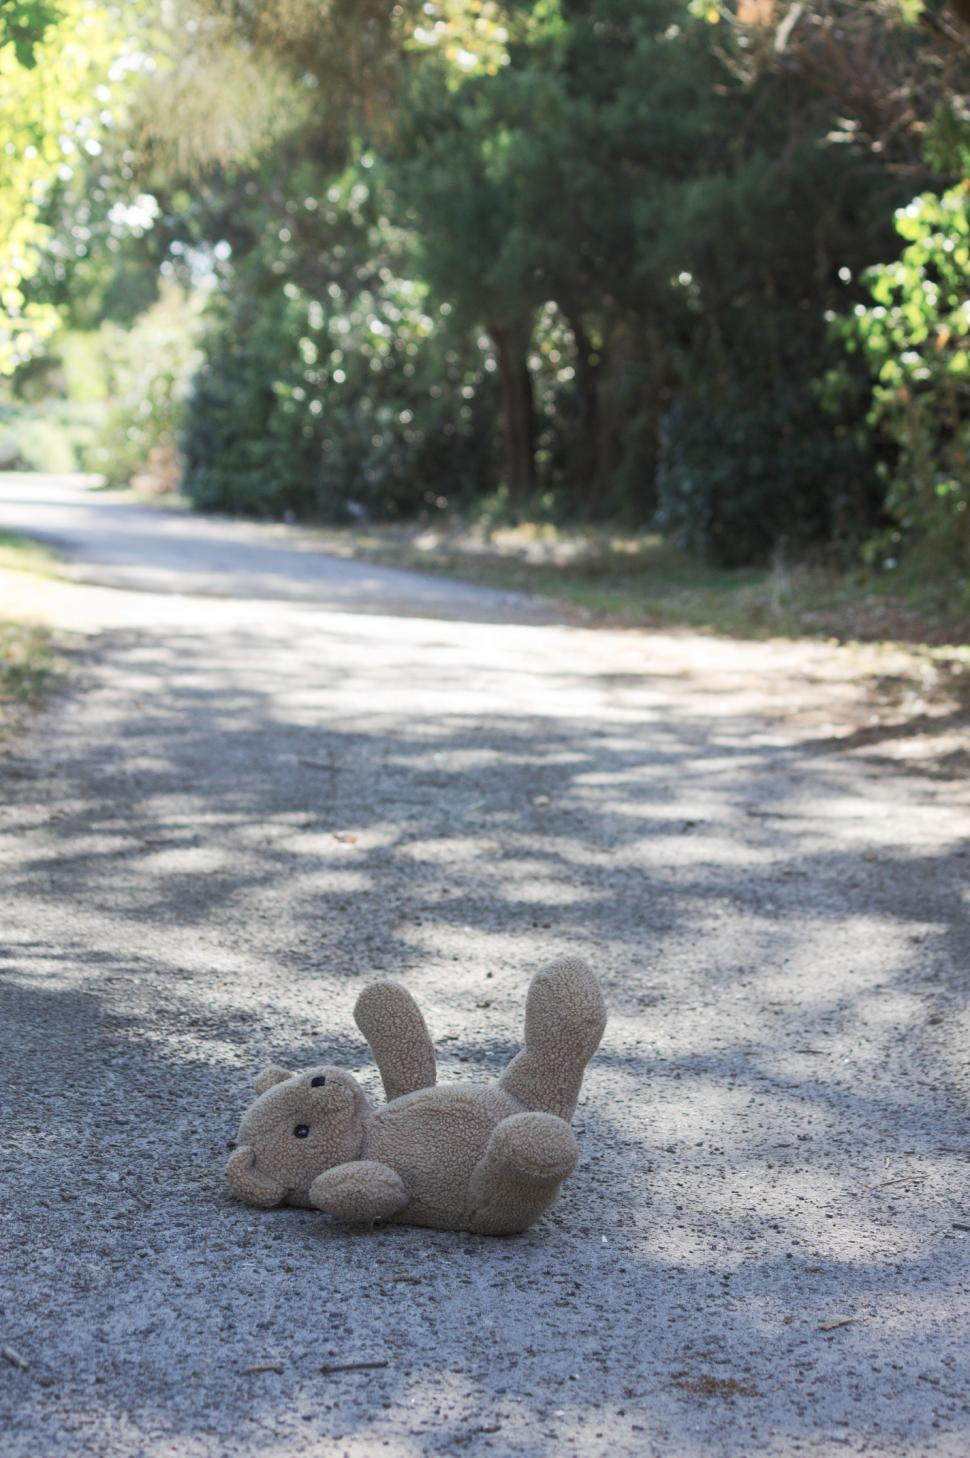 Download Free Stock Photo of Teddy bear on the ground